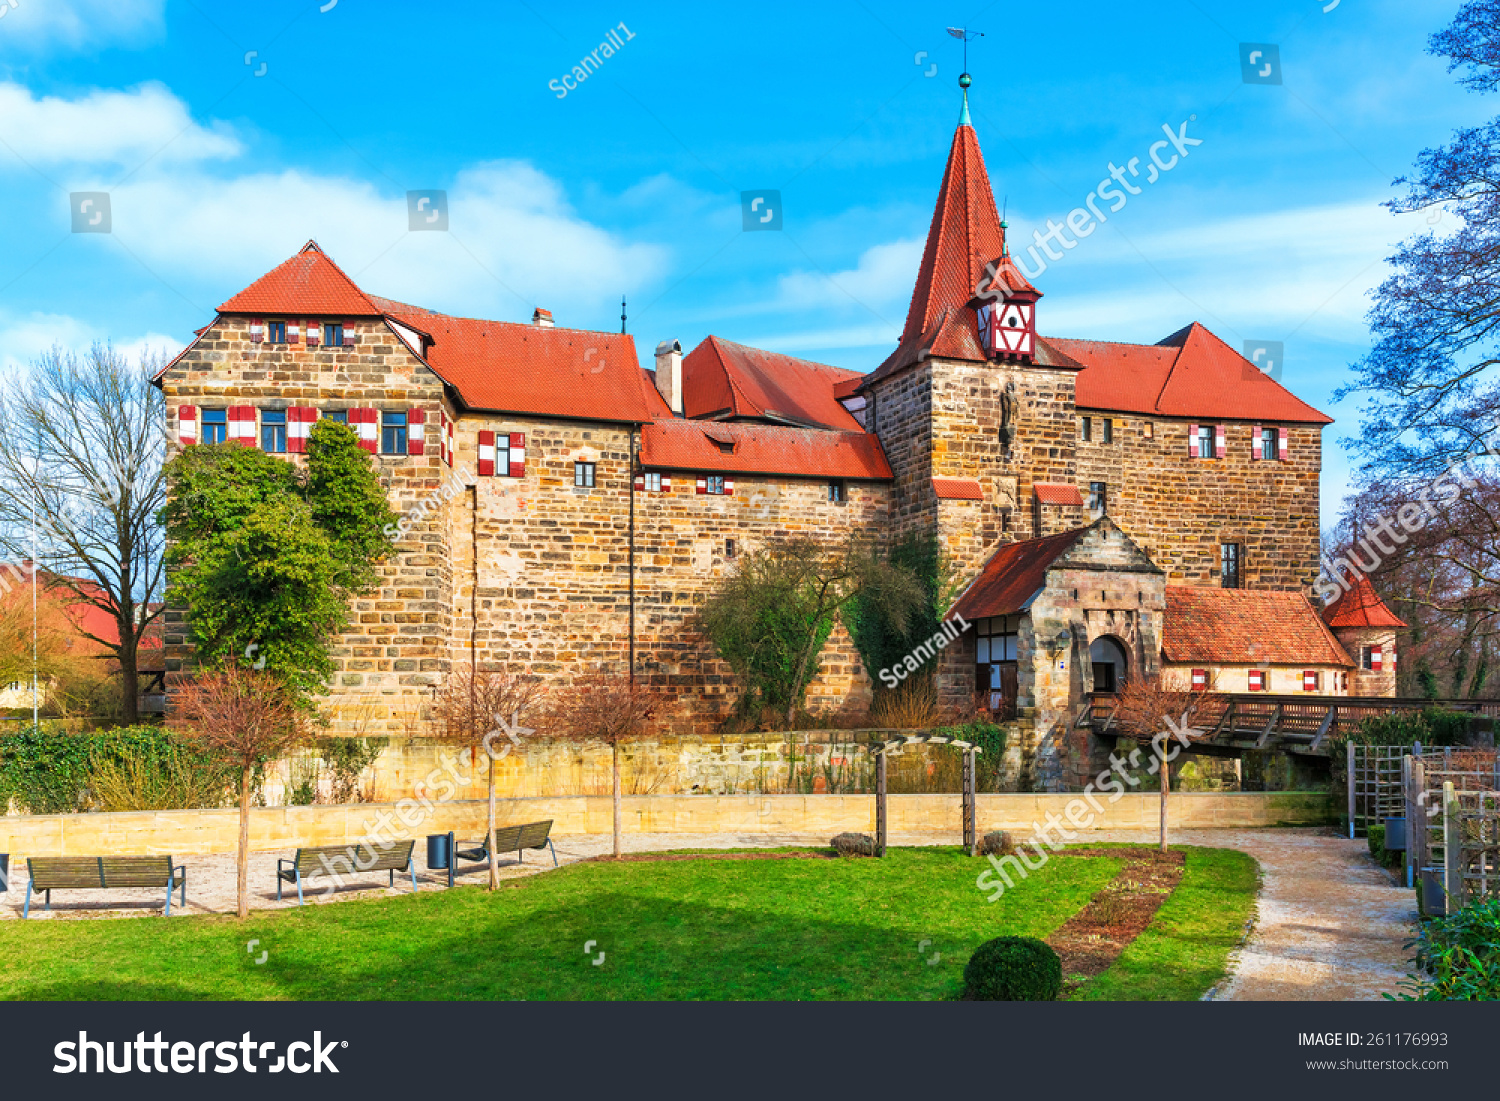 Scenic Spring View Of The Ancient Medieval Castle Architecture Building In Old Town Lauf